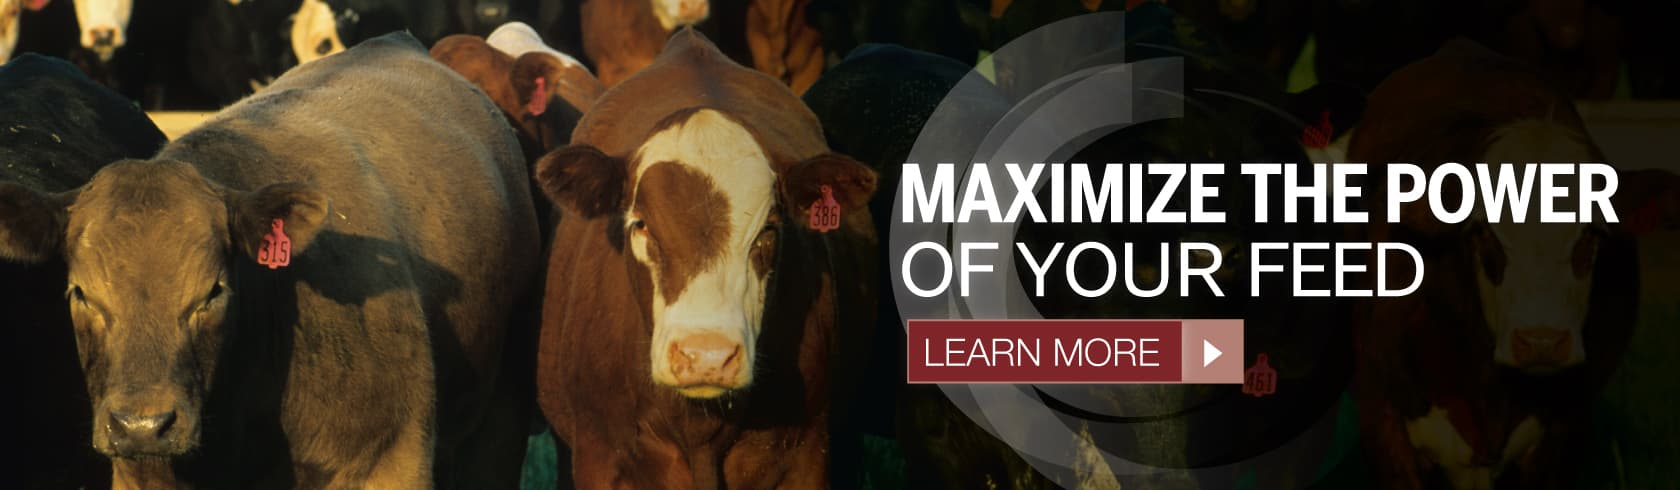 maximize the power of your feeds